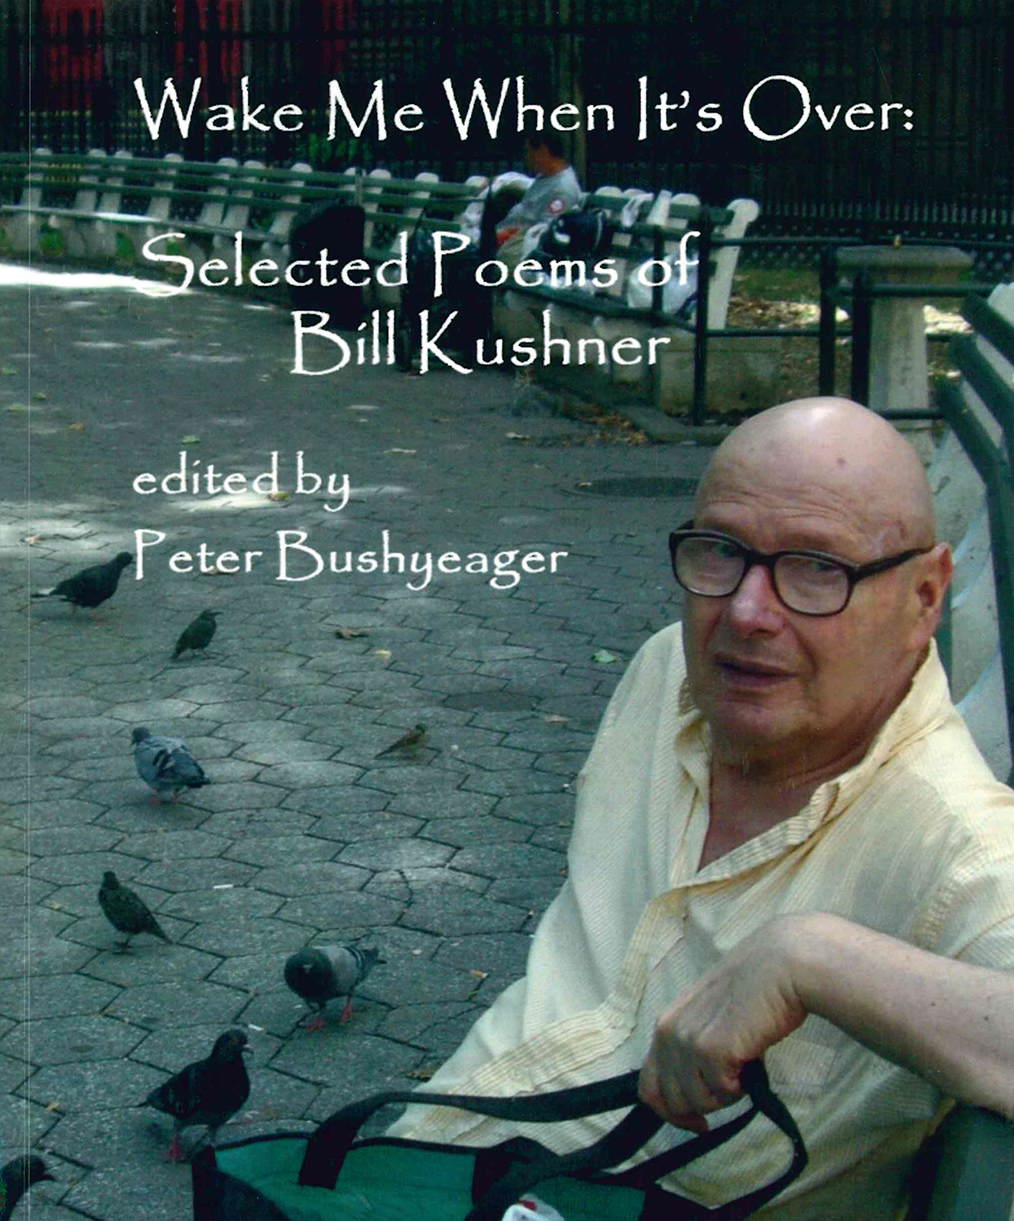 Wake Me When It's Over: Selected Poems